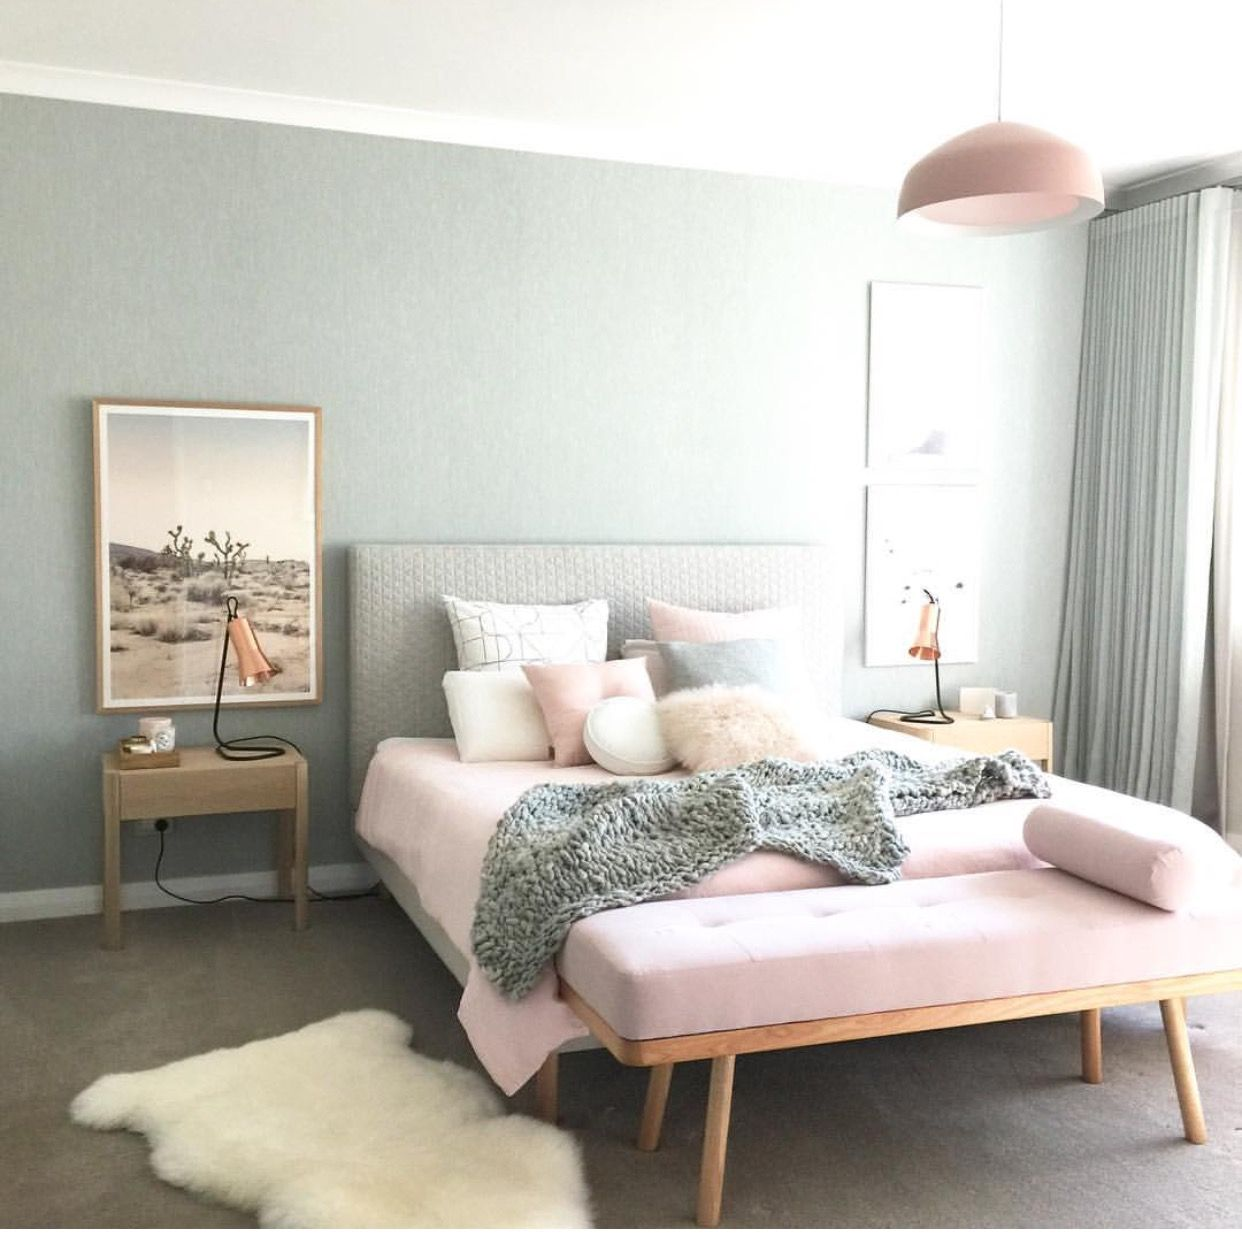 Pastel Bedroom | Bedroom | Pinterest | Pastel bedroom, Pastel and ...